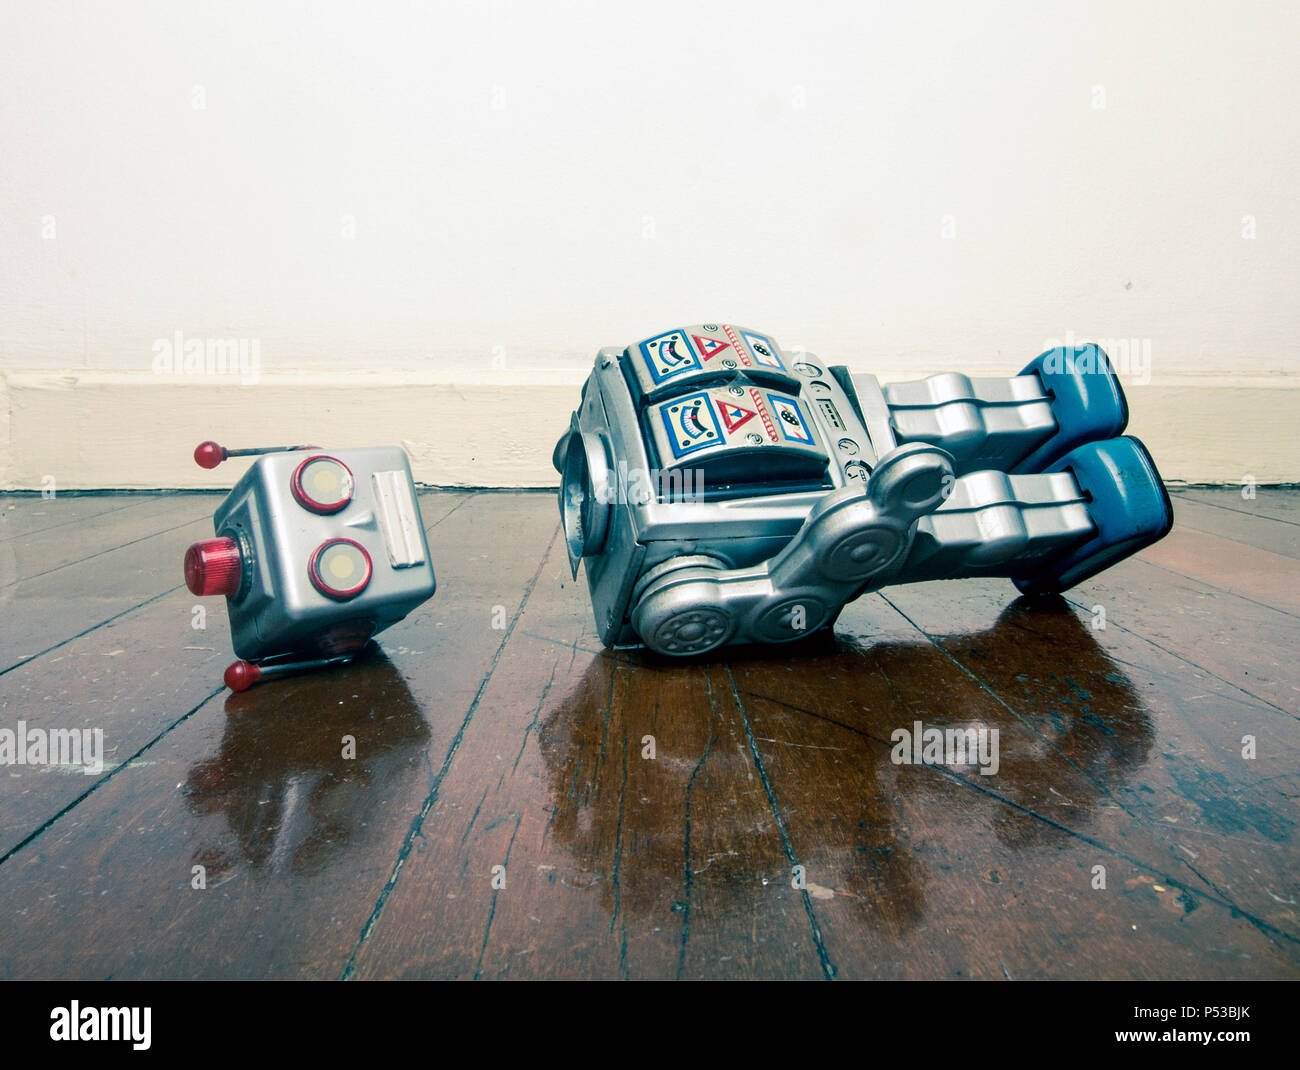 vintage bot lost his head on a old wooden floor with reflection - Stock Image